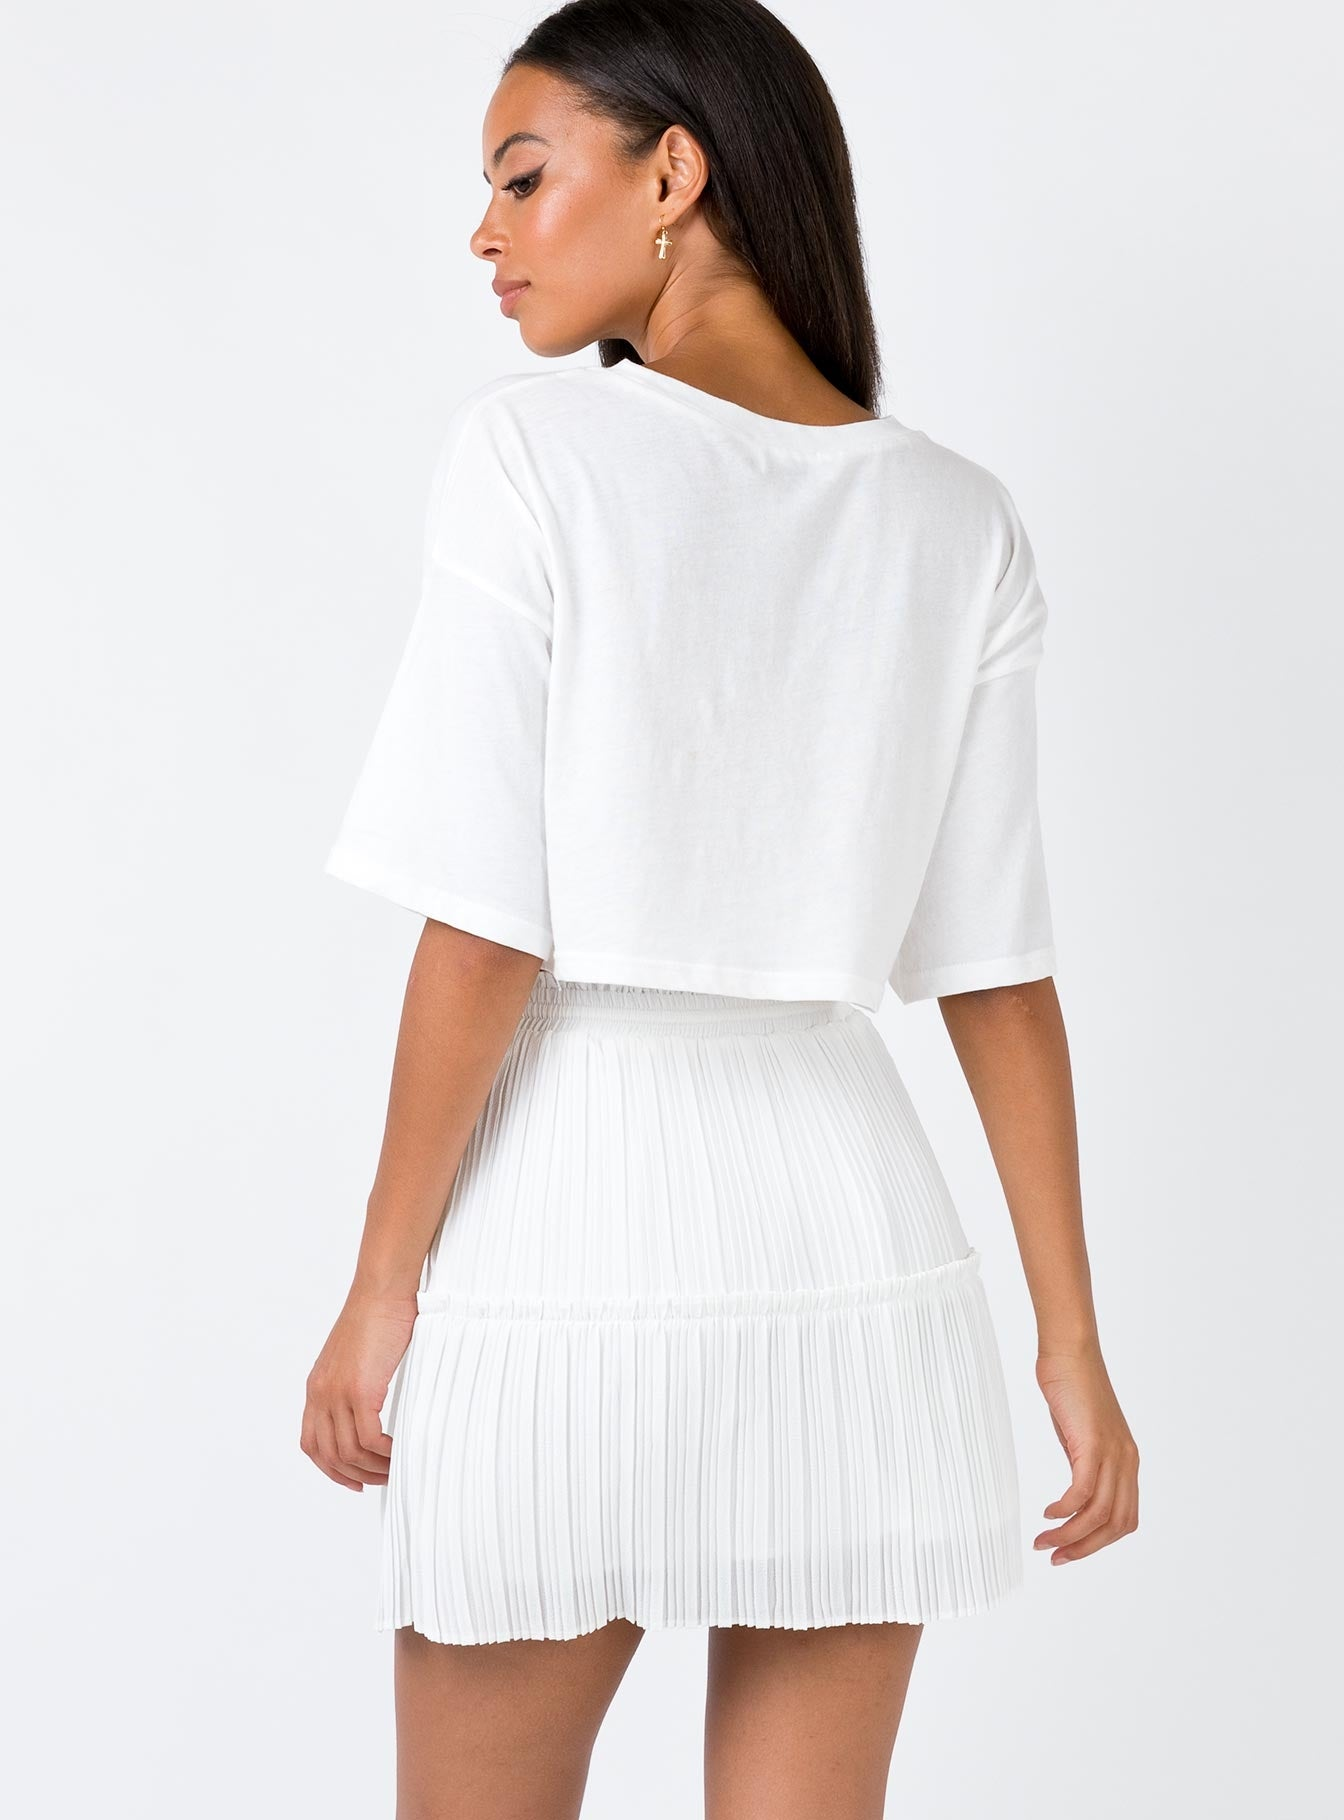 Mraz Mini Skirt White